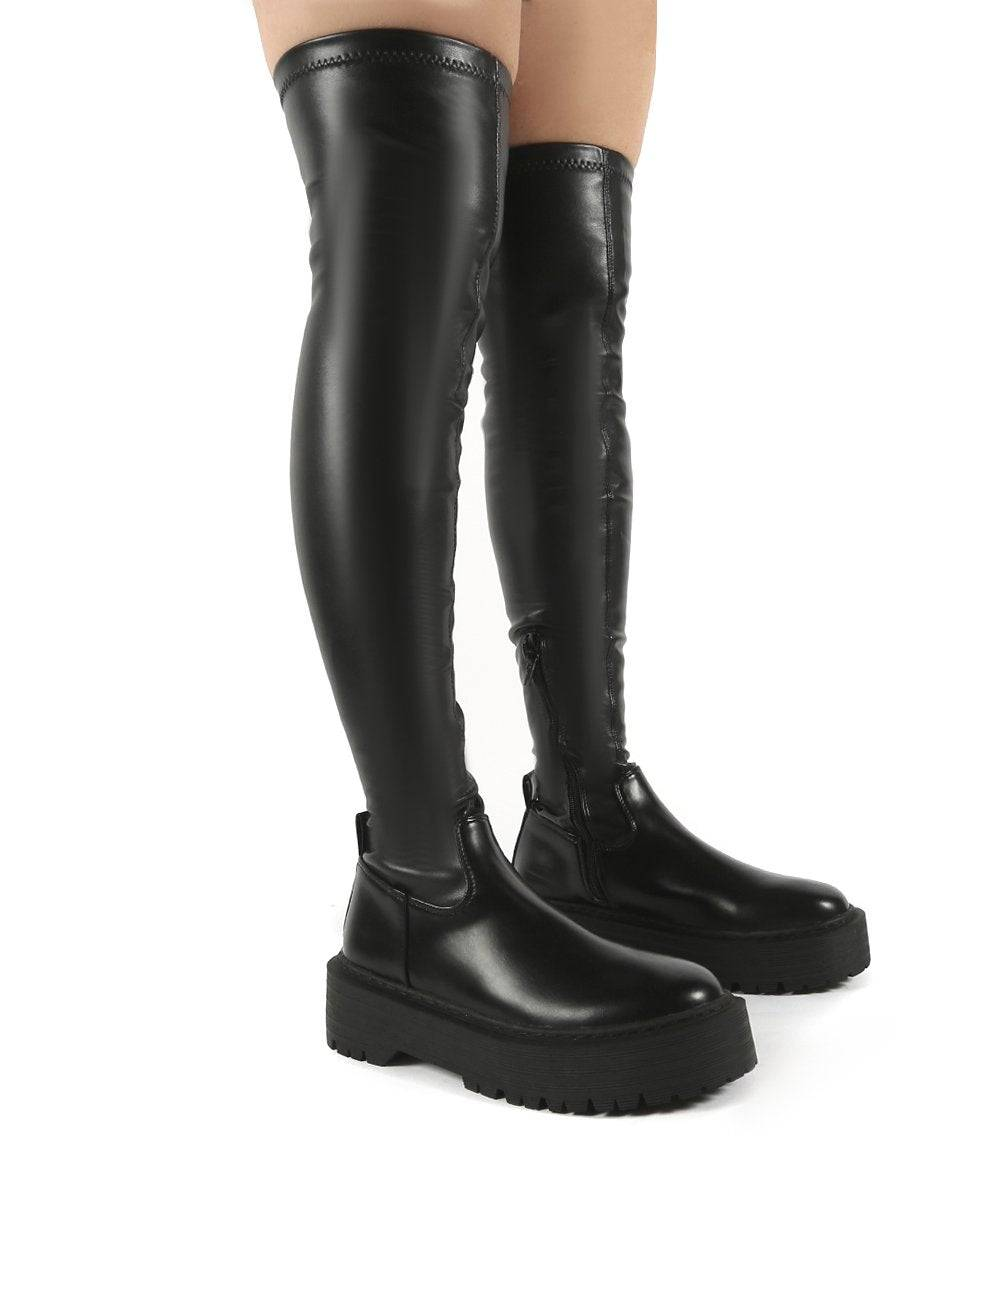 Public Desire US Charly Black Pu Chunky Sole Over The Knee Boots - US 7